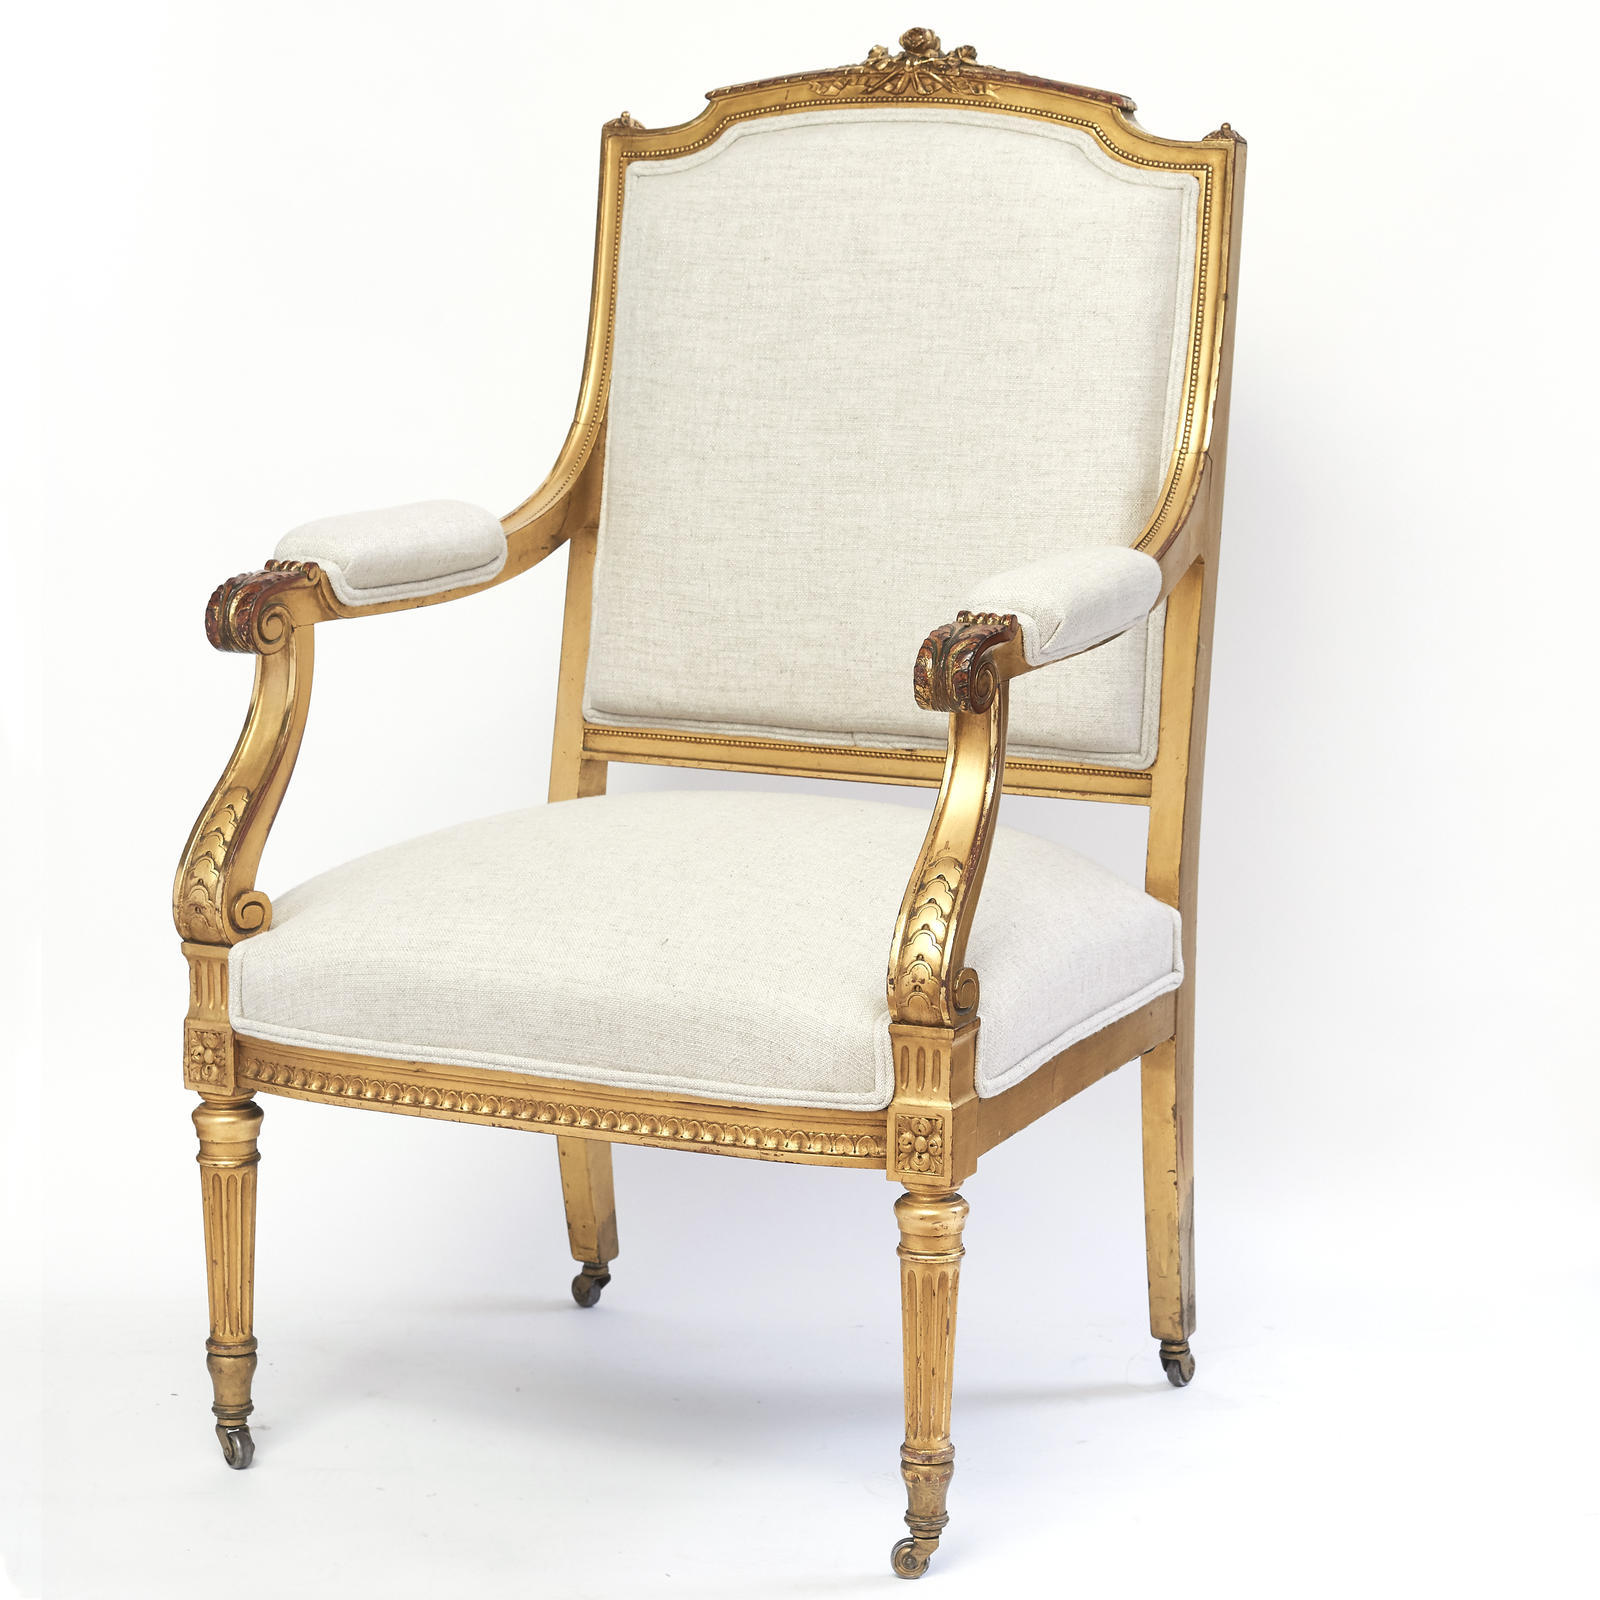 Louis XVI Style GiltWood Fauteuil Furniture Greenwald Antiques - Fauteuil louis xvi